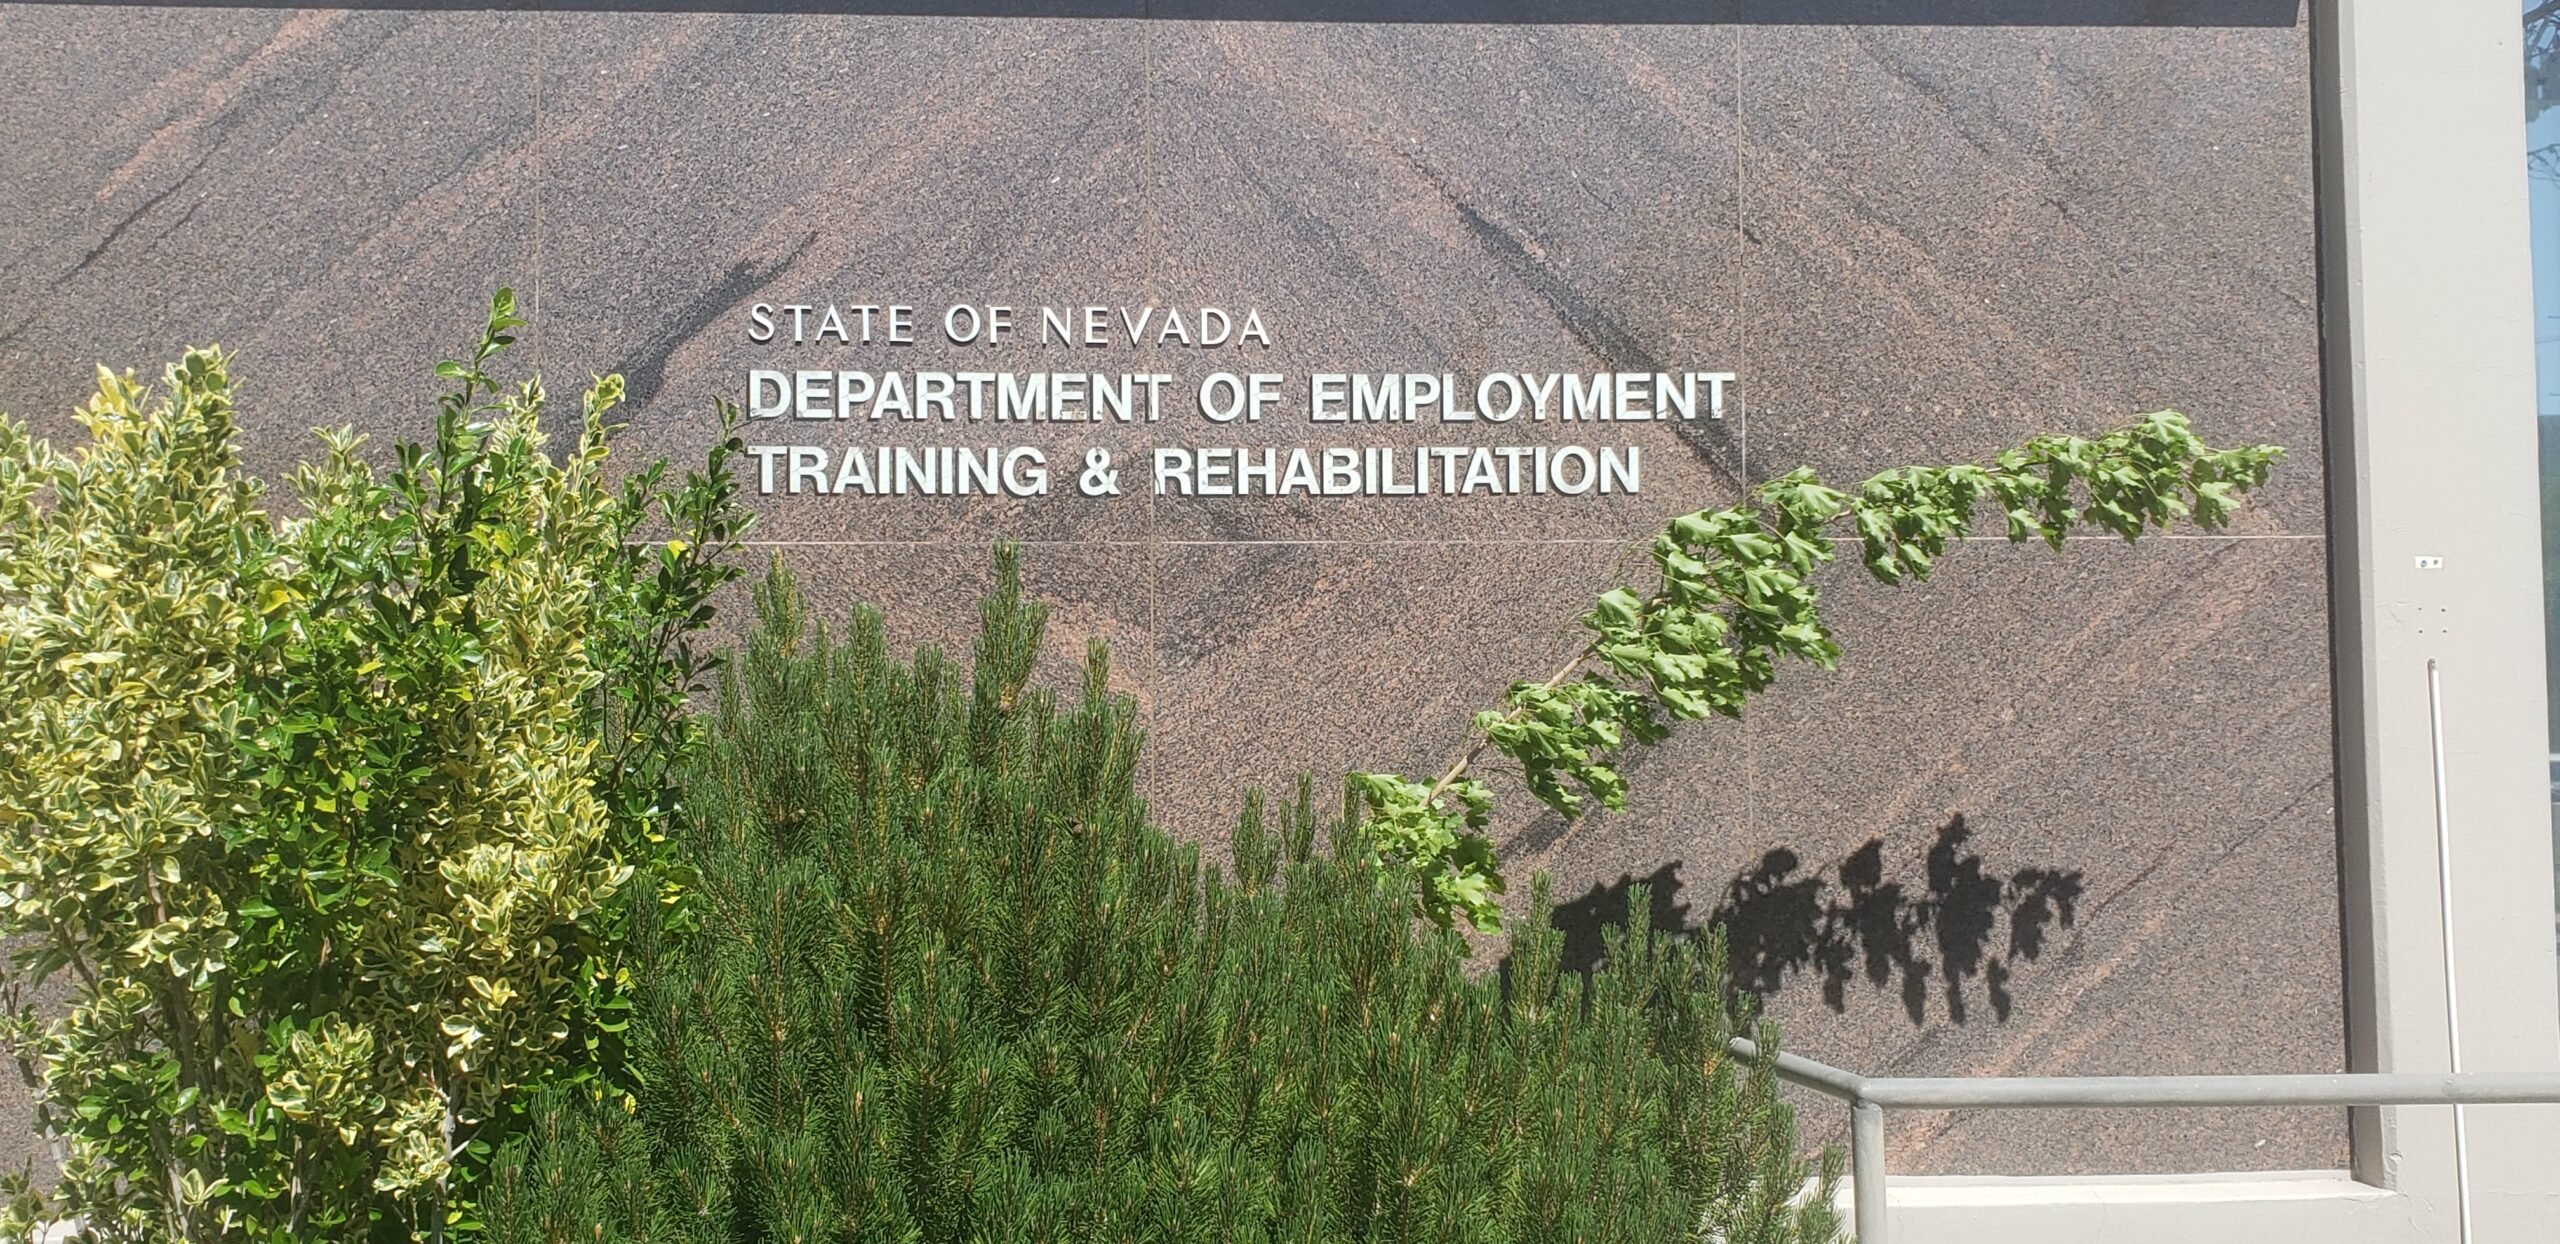 A sign that for the Department of Employment, Training & Rehabilitation